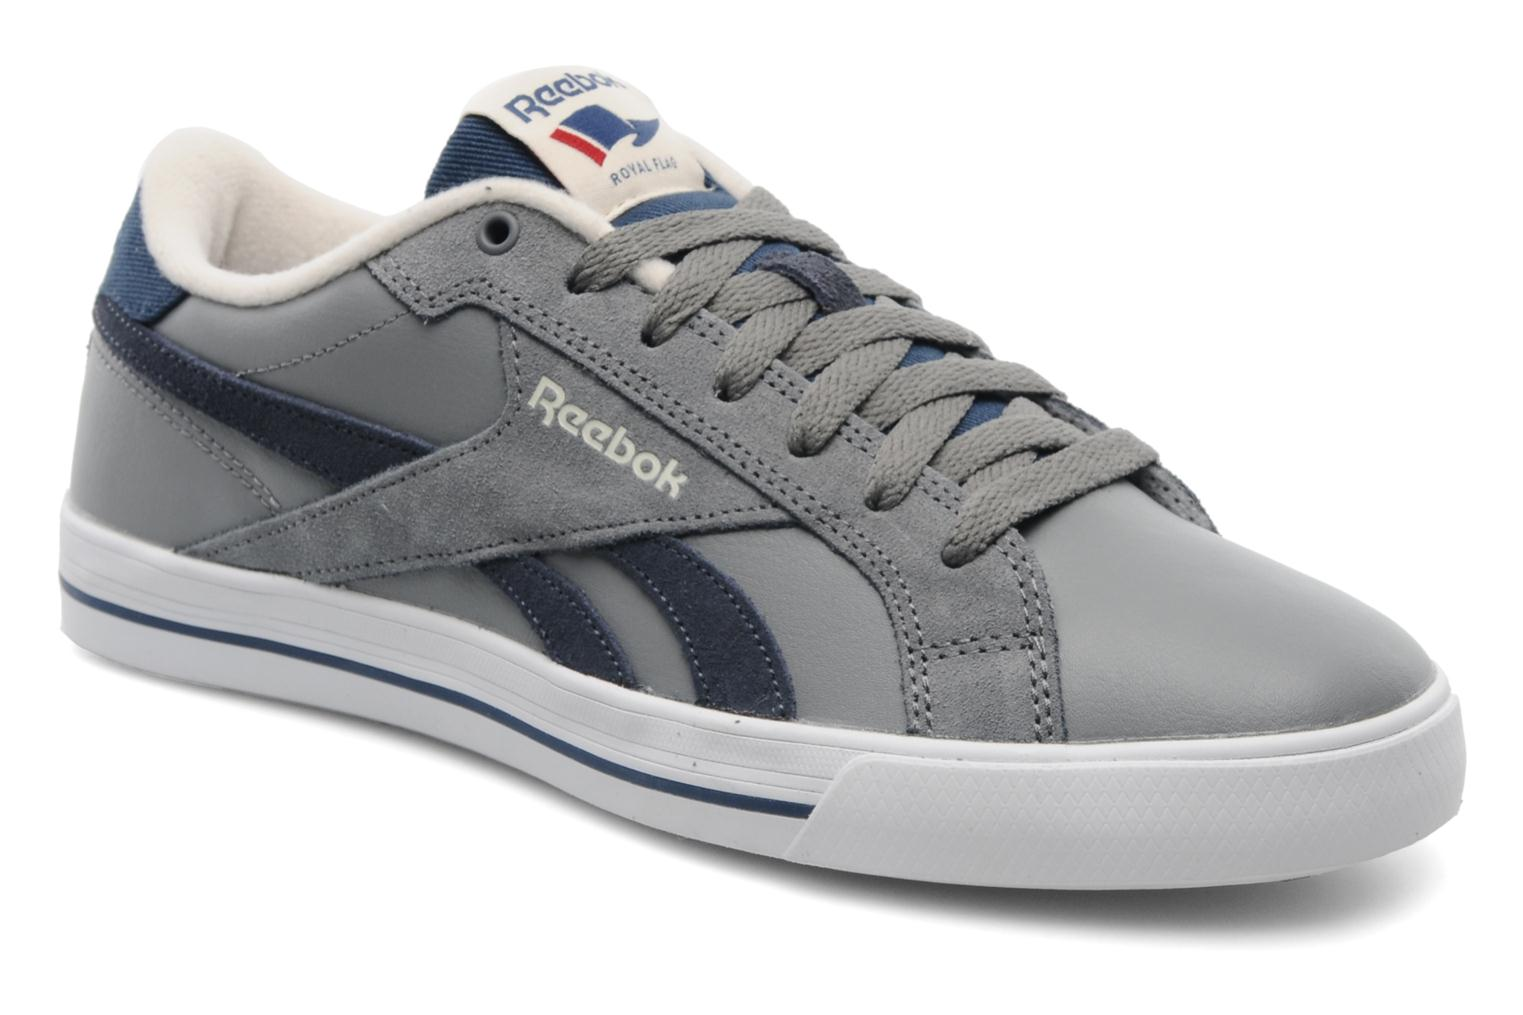 reebok reebok royal complete low m trainers in grey at 194248. Black Bedroom Furniture Sets. Home Design Ideas